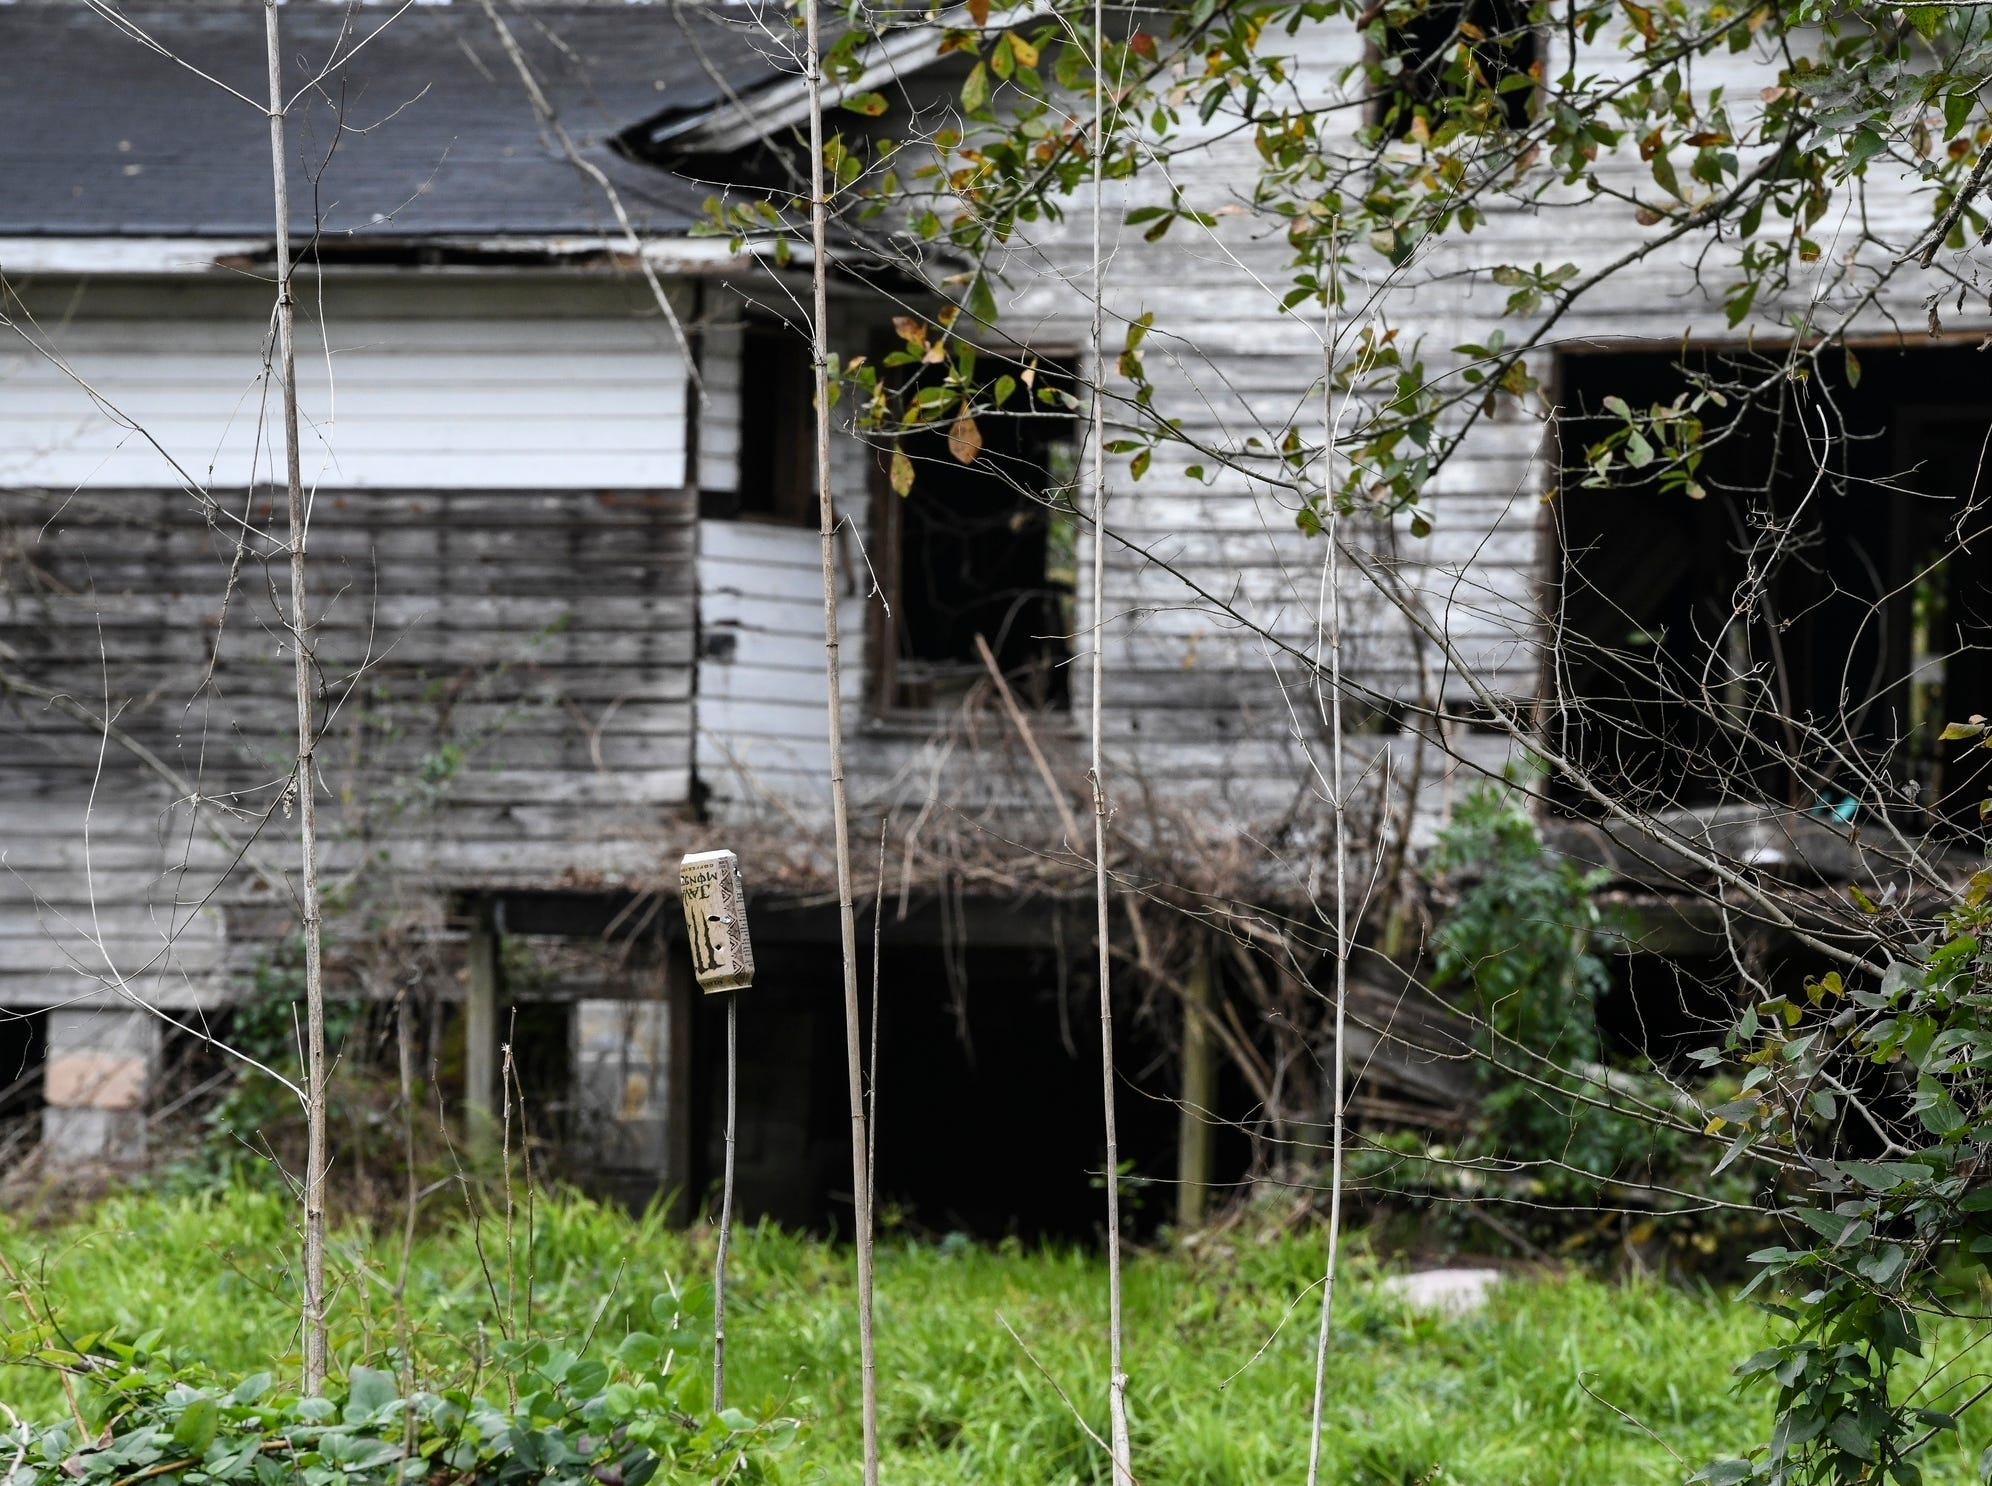 A dilapidated home can be seen from neighboring Old Plateau Cemetery, the final resting place for many who spent their lives in Africatown, near Mobile, Ala., on Tuesday, Jan. 29, 2019. Many of the survivors of the Clotilda's voyage are buried here amongst the trees. (AP Photo/Julie Bennett)